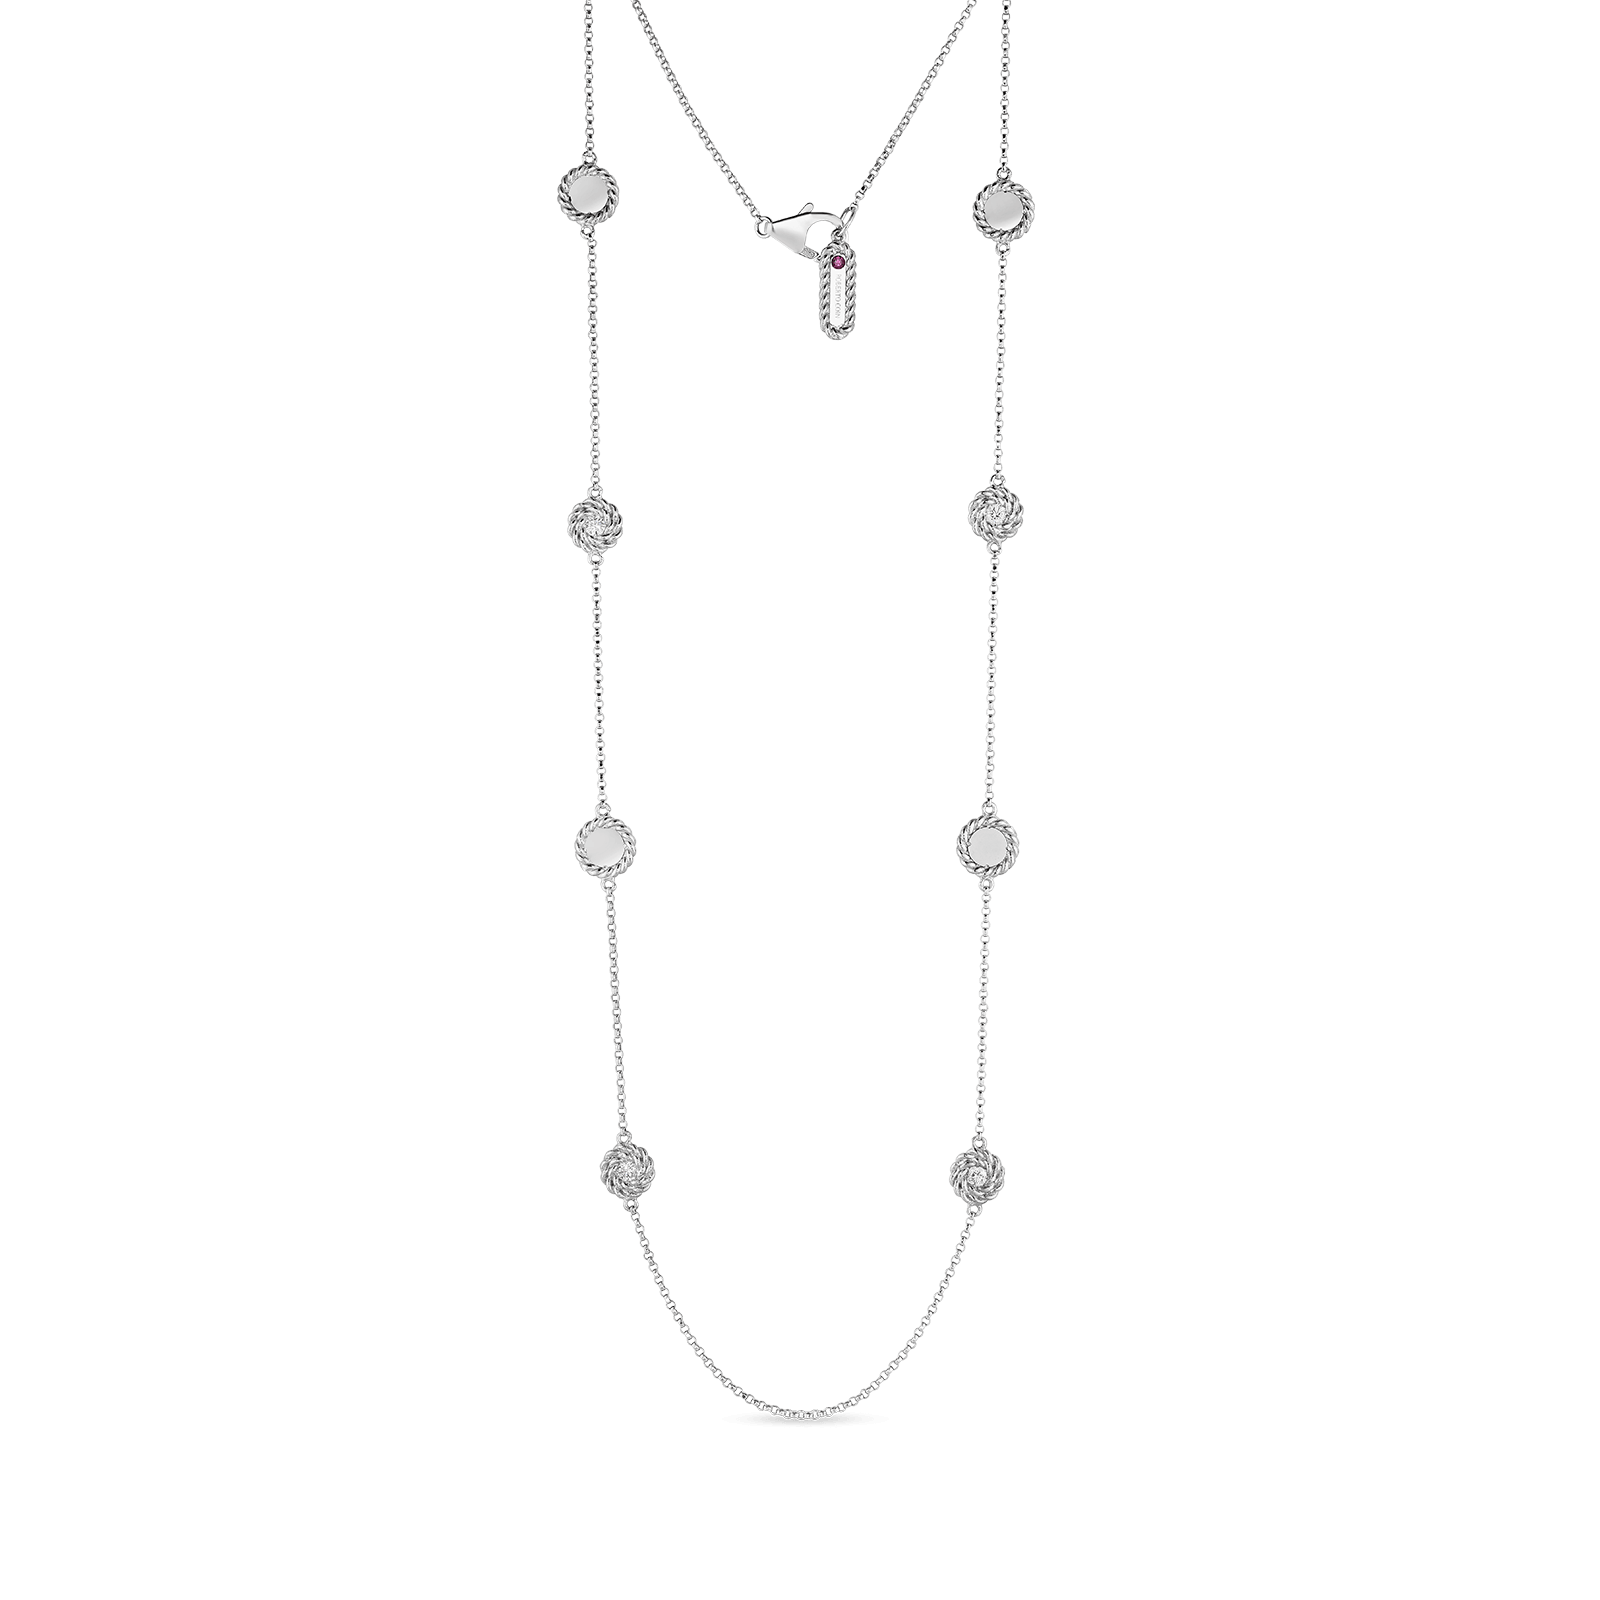 Roberto-Coin-18k-white-gold-Necklace with Alternating Diamond Stations-7771315AW35Xalt